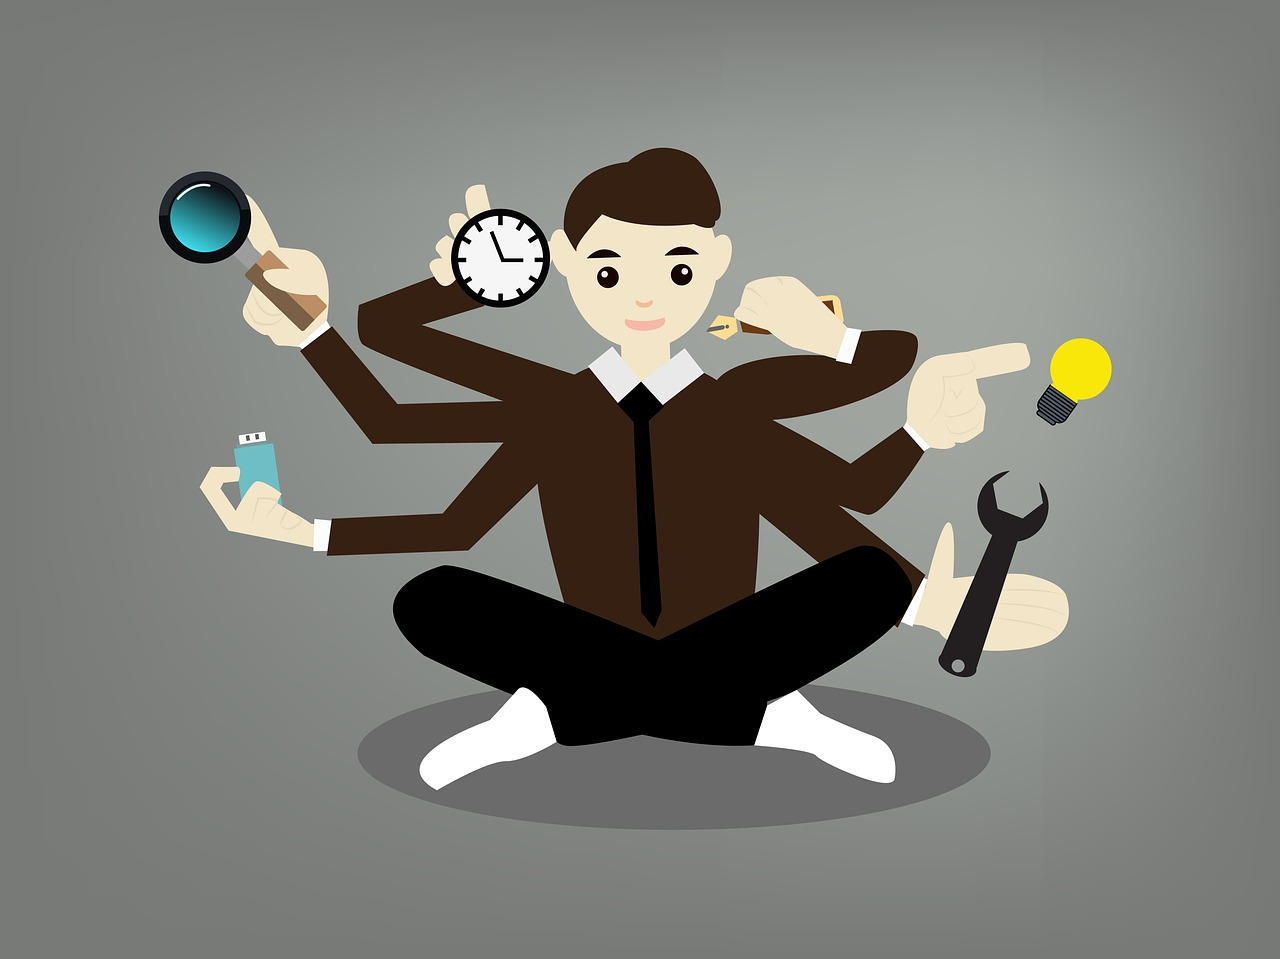 person with extra arms to perform many tasks